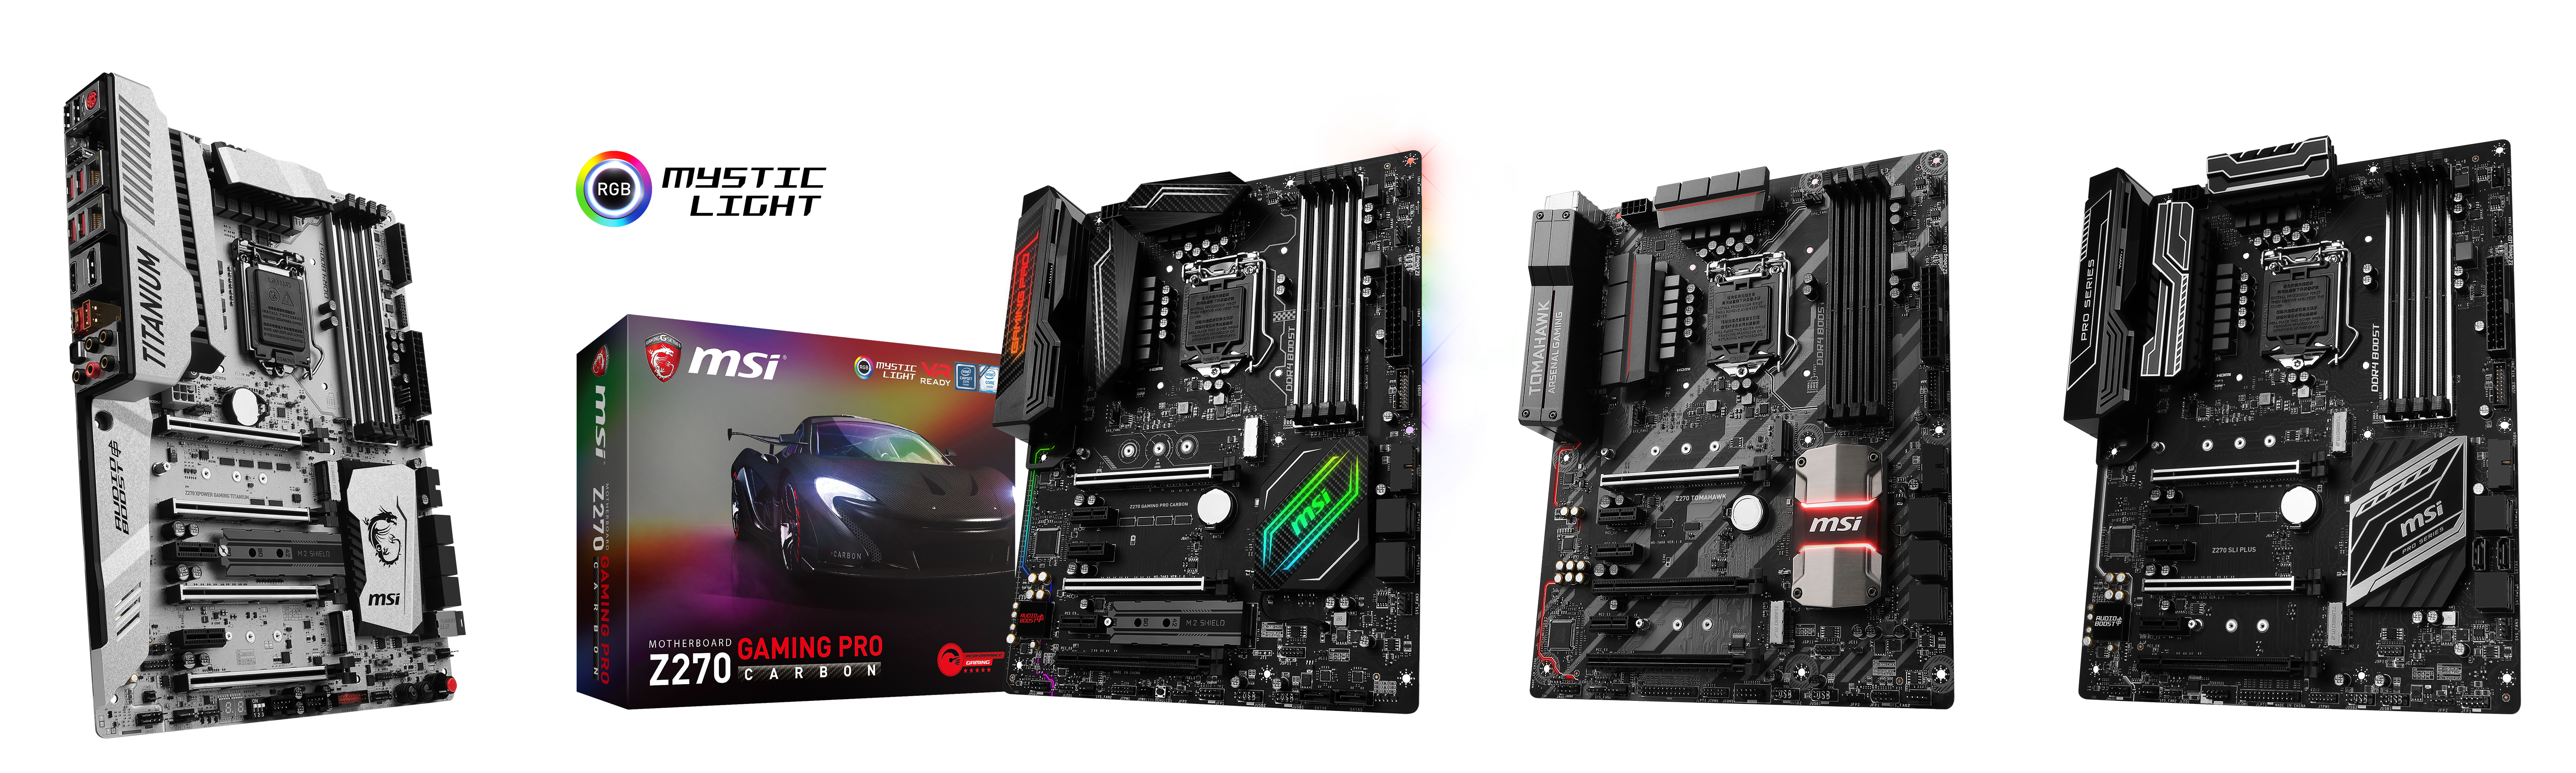 MSI Rocks CES 2017 Hand-in-Hand with Intel and NVIDIA